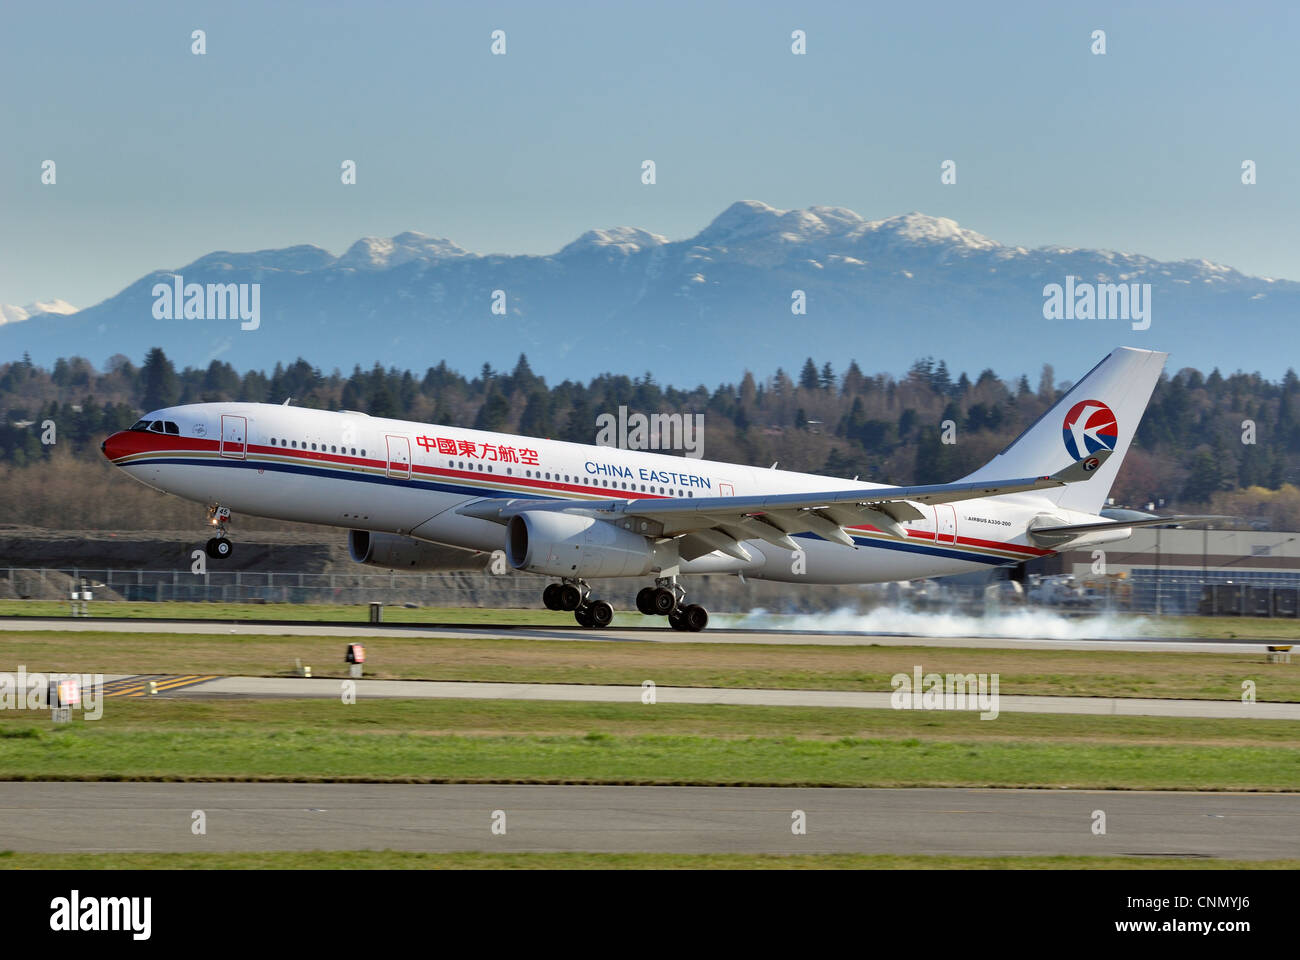 China Eastern Airbus A330 (200) landing at Vancouver International Airport. - Stock Image